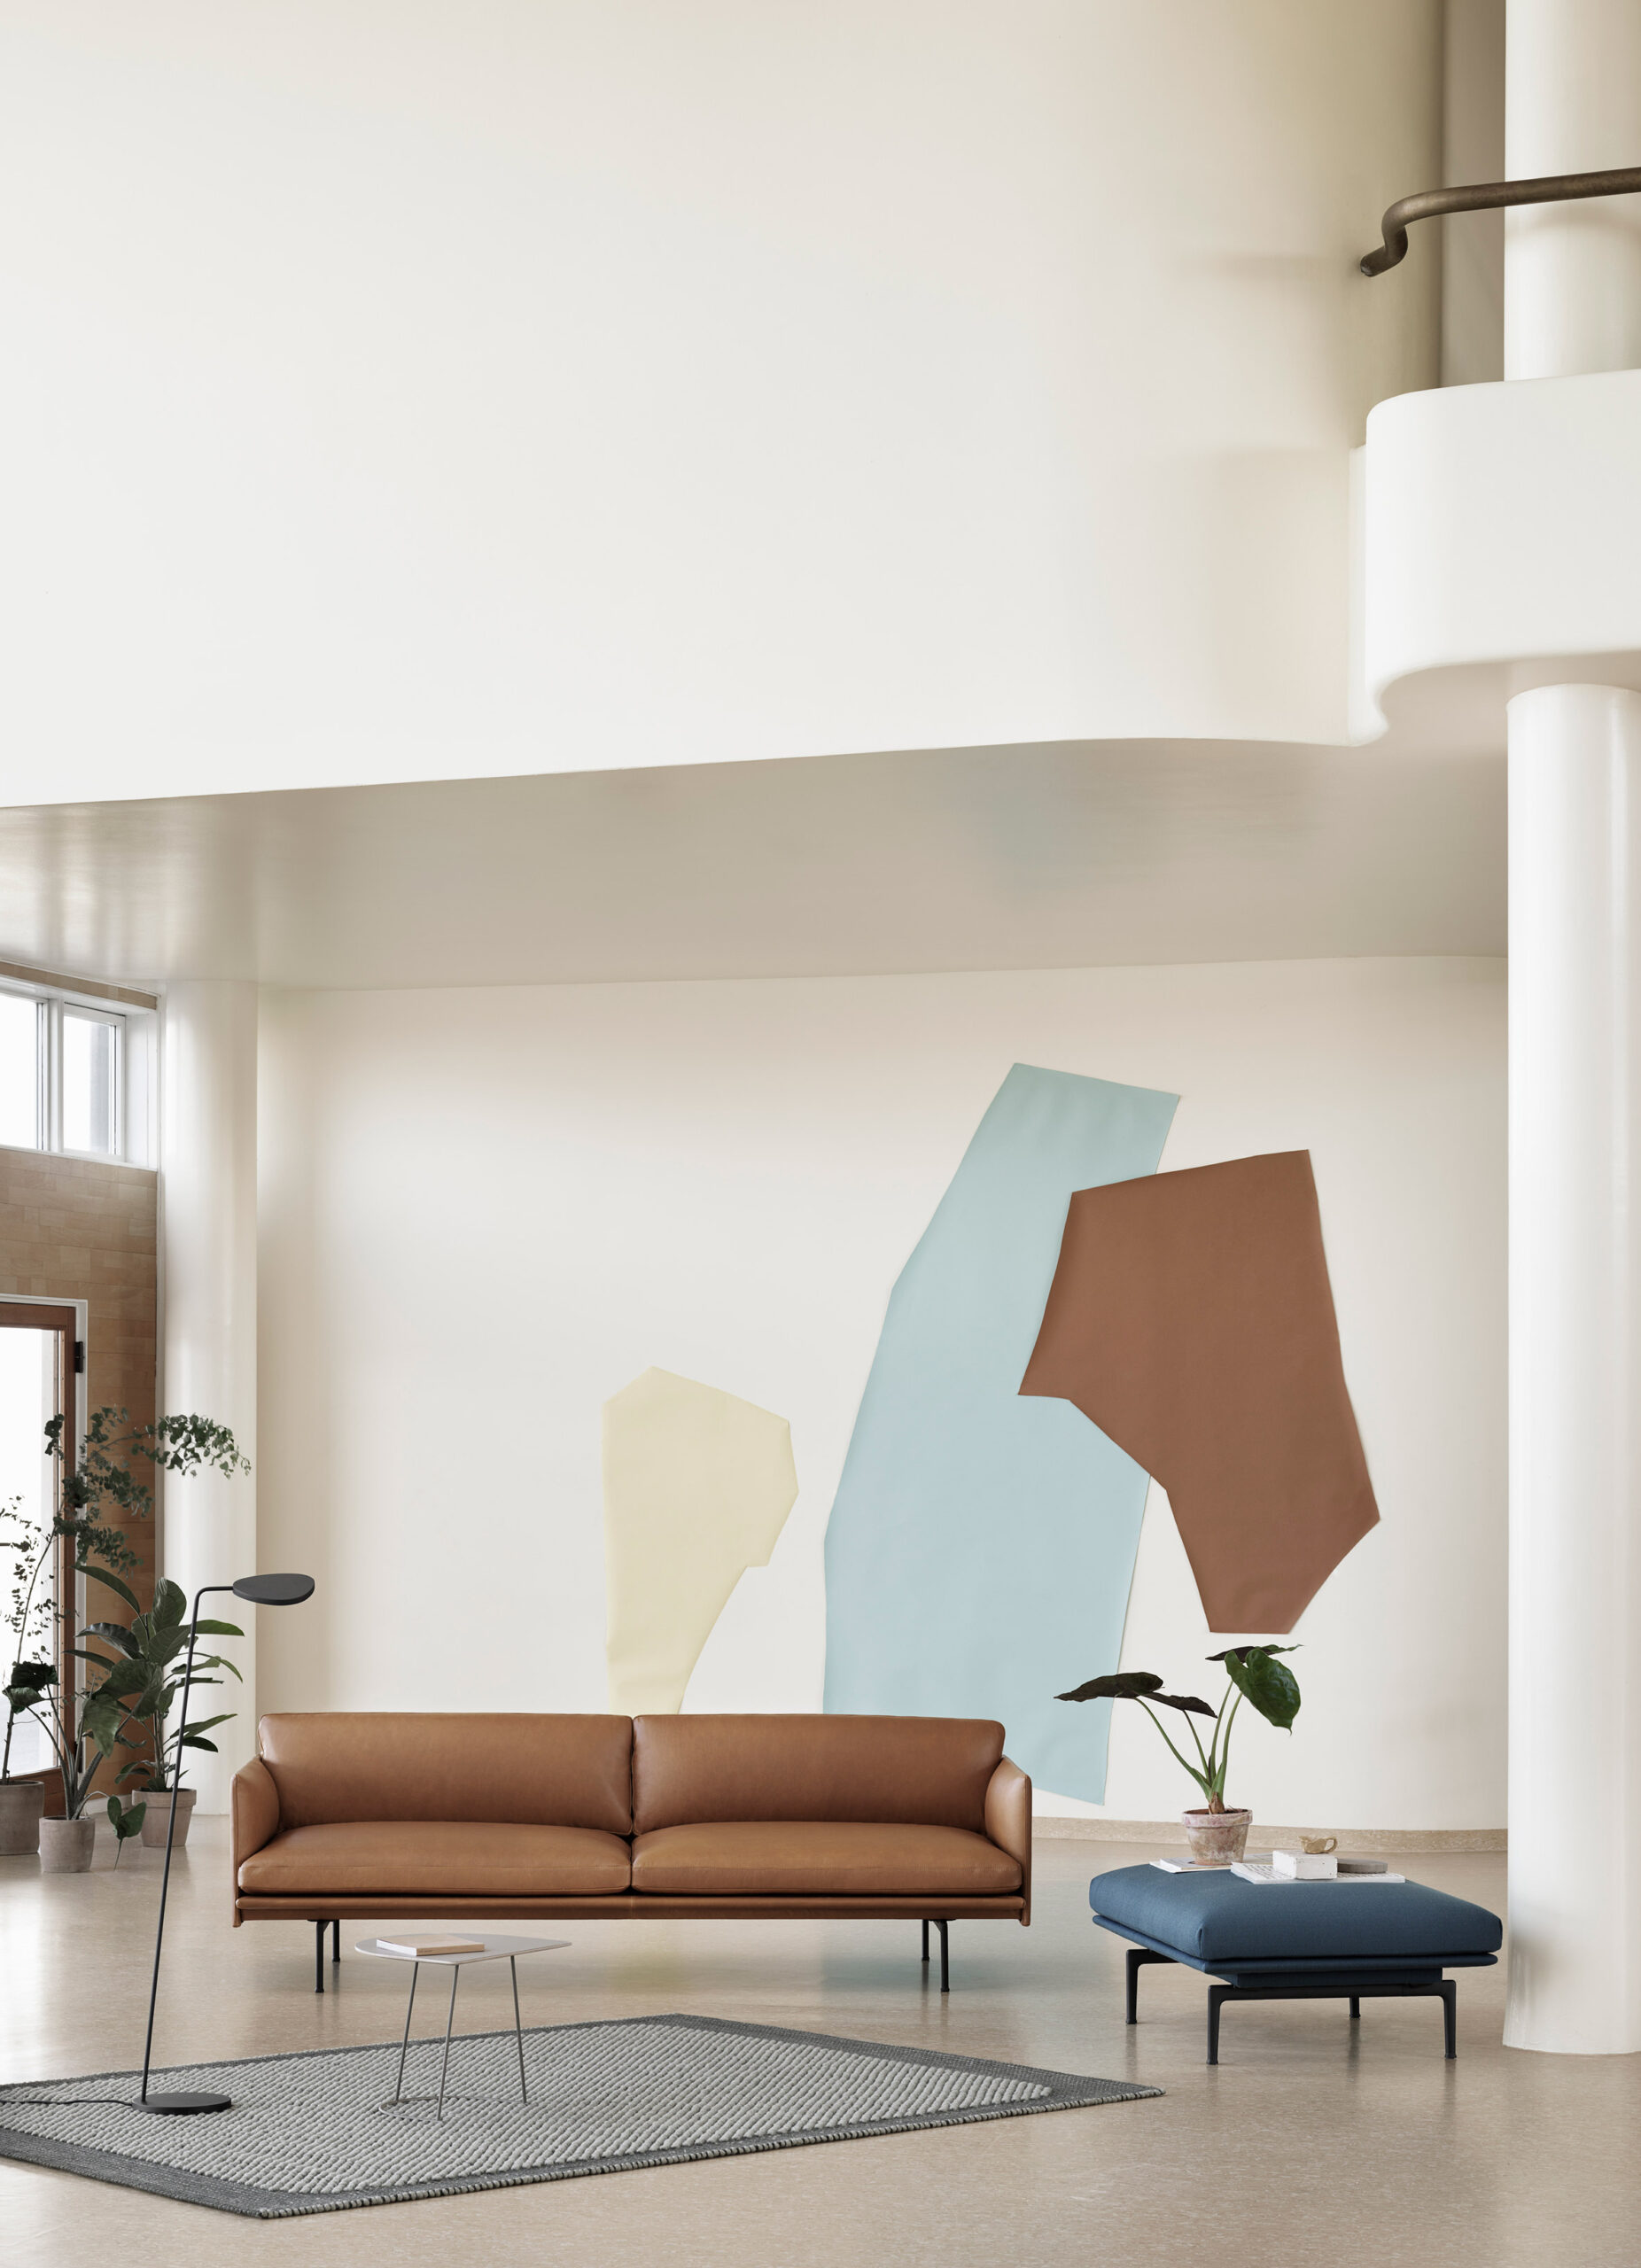 Full Size of Muuto Sofa Outline Uk 3 1/2 Compose Review Sofabord Tilbud Connect Dimensions Furniture Oslo 2 Seater Pris Anderssen Voll Designs Muutos First Ever High Back Sofa Muuto Sofa